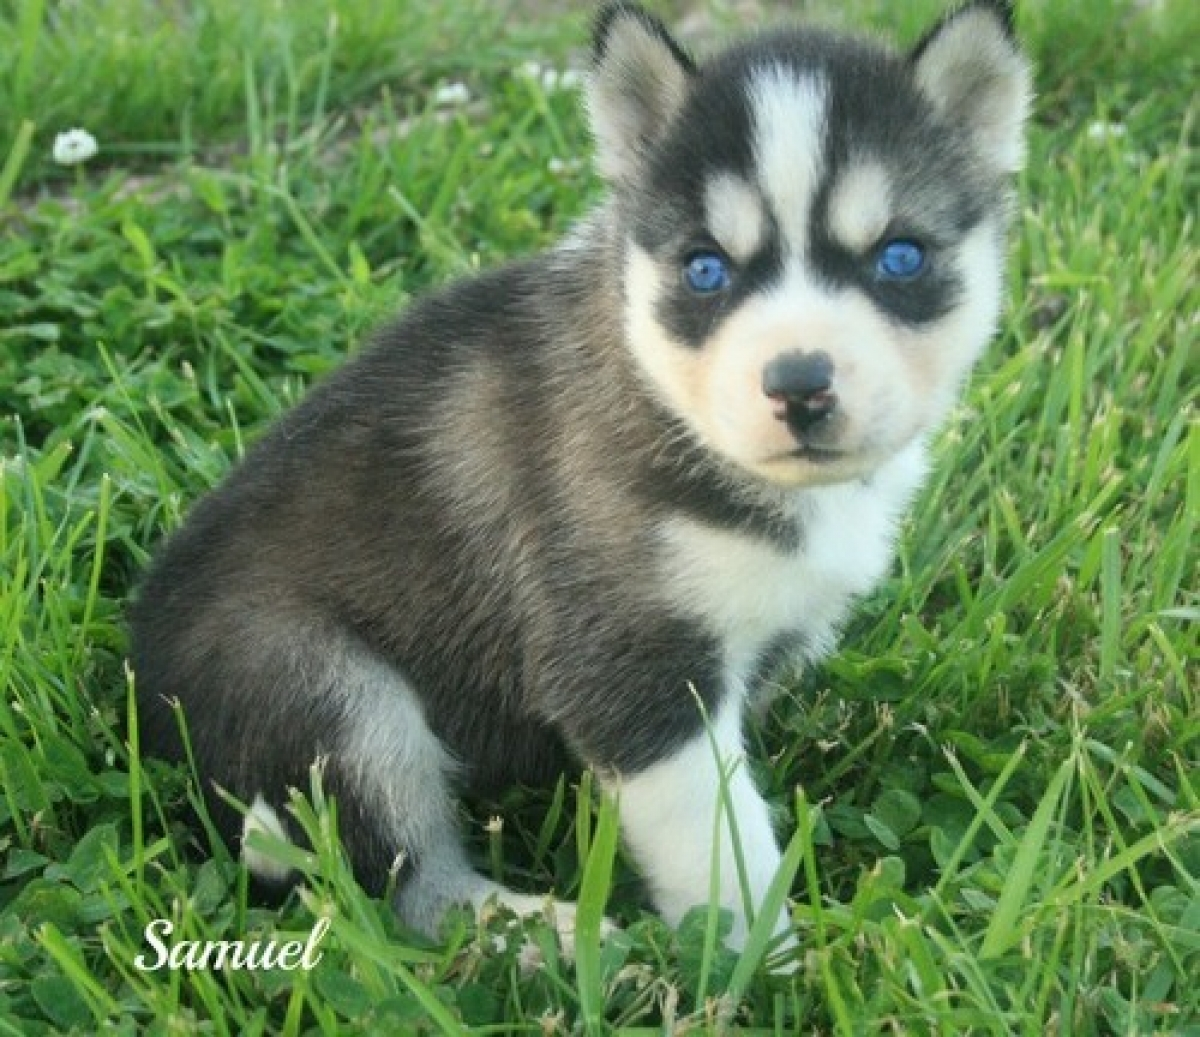 Husky puppies for adoption in california - Samuel 3 Months Old Male Husky Puppy For Adoption